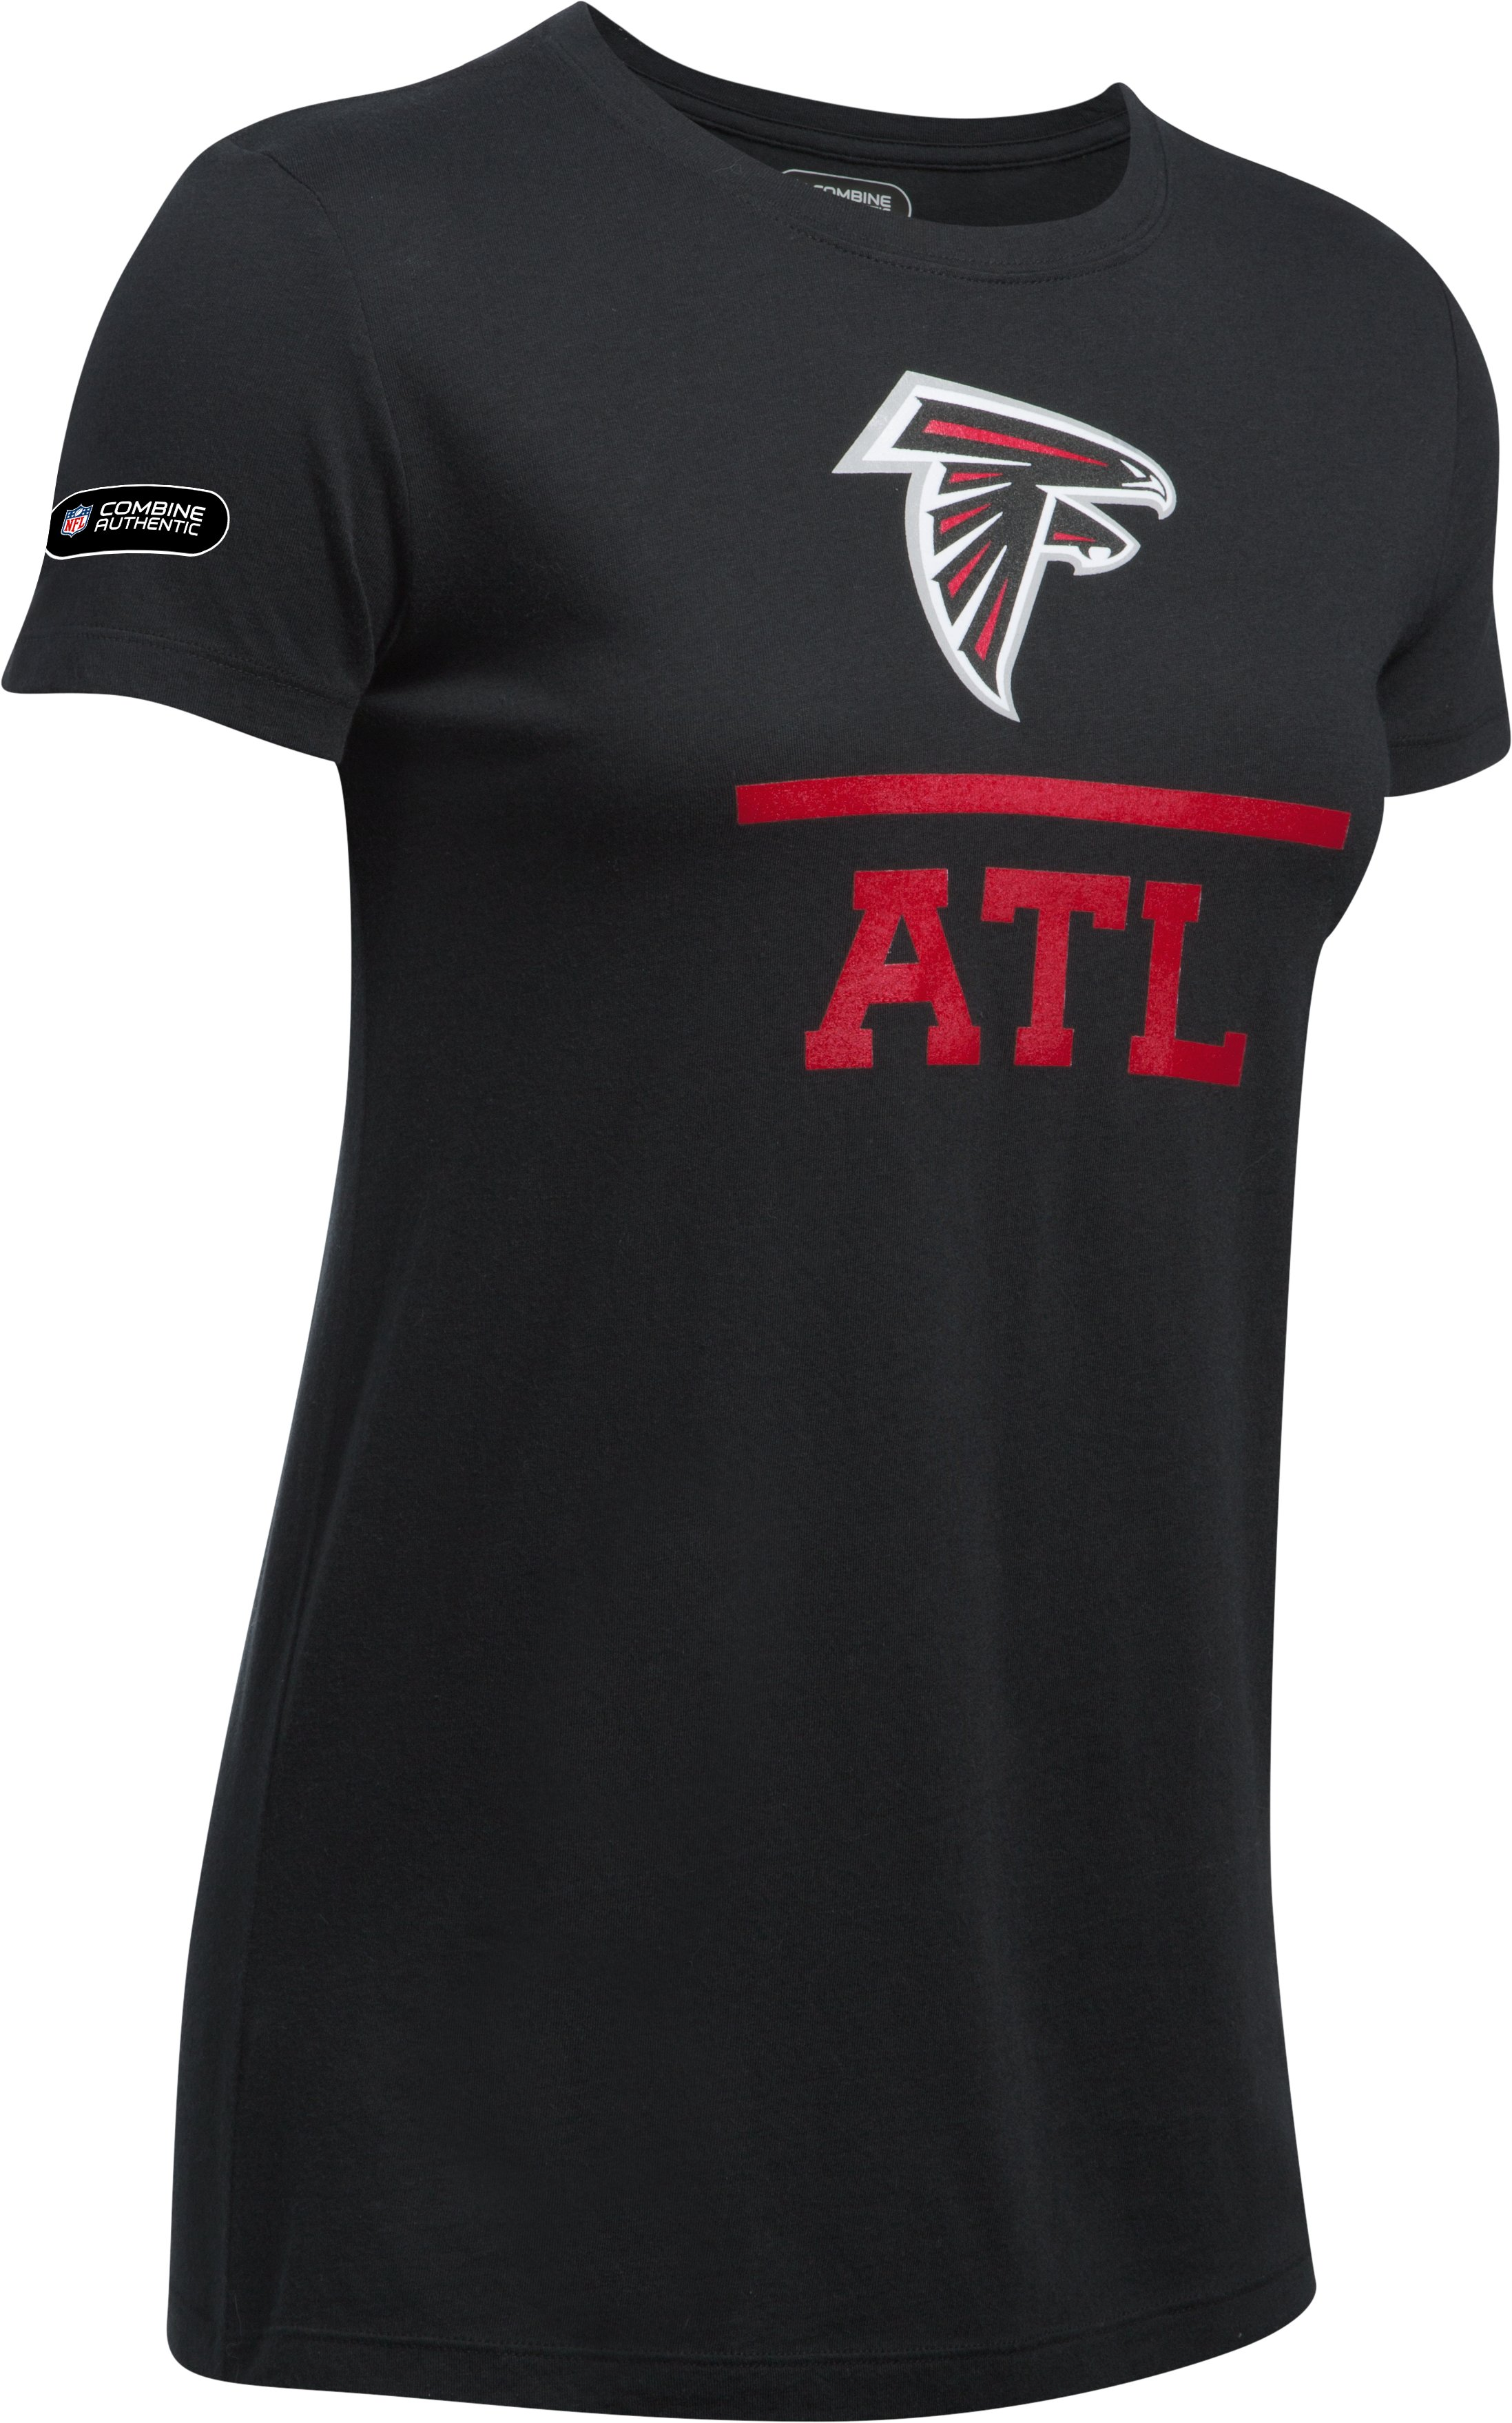 Women's NFL Combine Authentic Lockup T-Shirt, Atlanta Falcons,